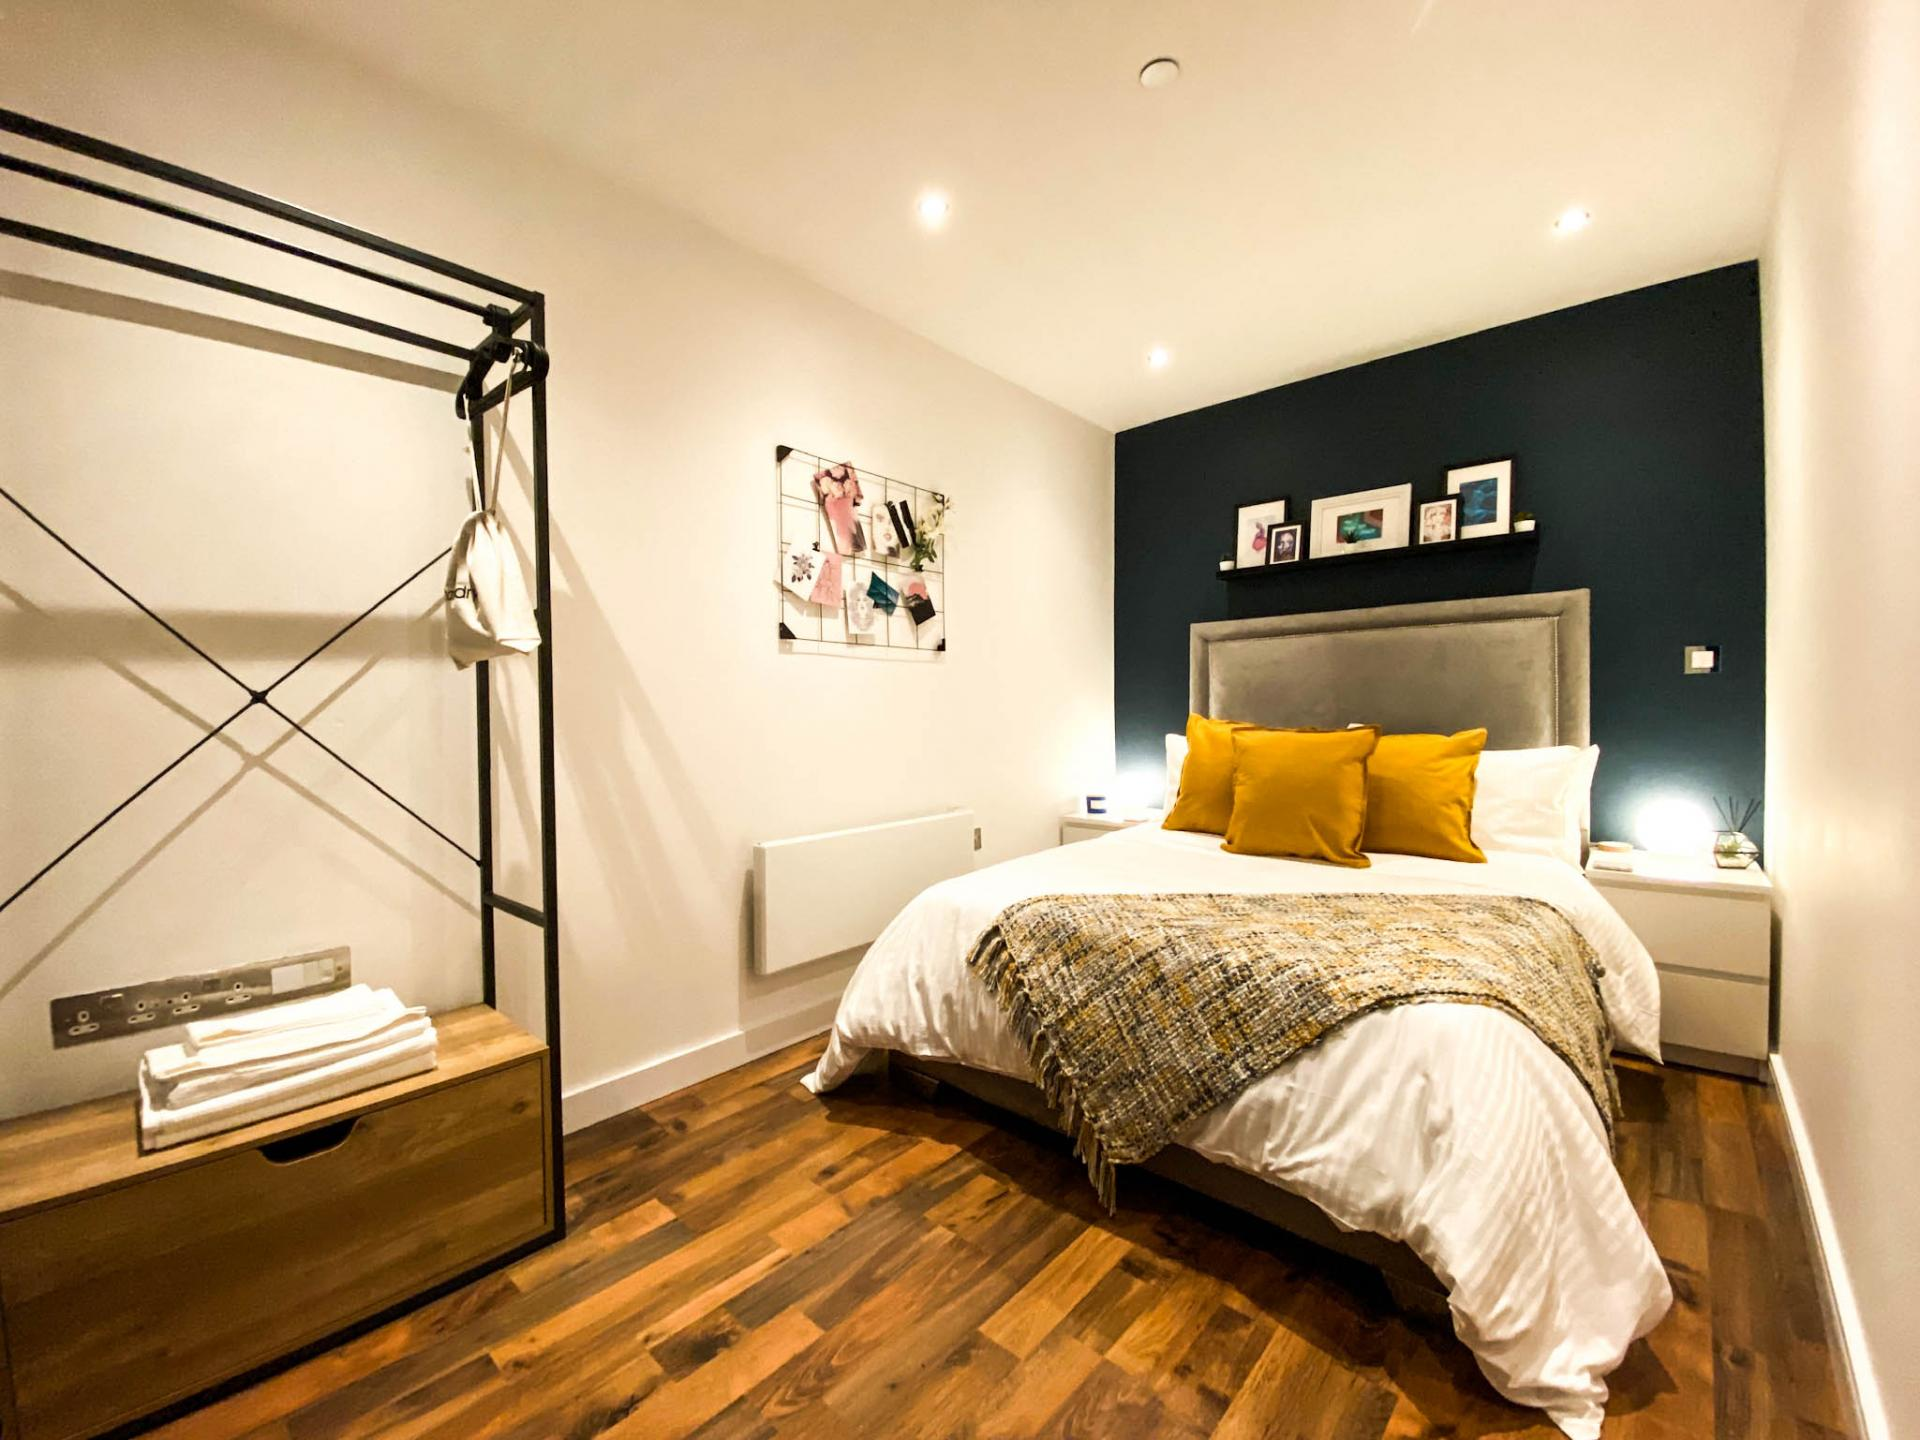 Bedroom at Milliners Wharf Apartment, New Islington, Manchester - Citybase Apartments